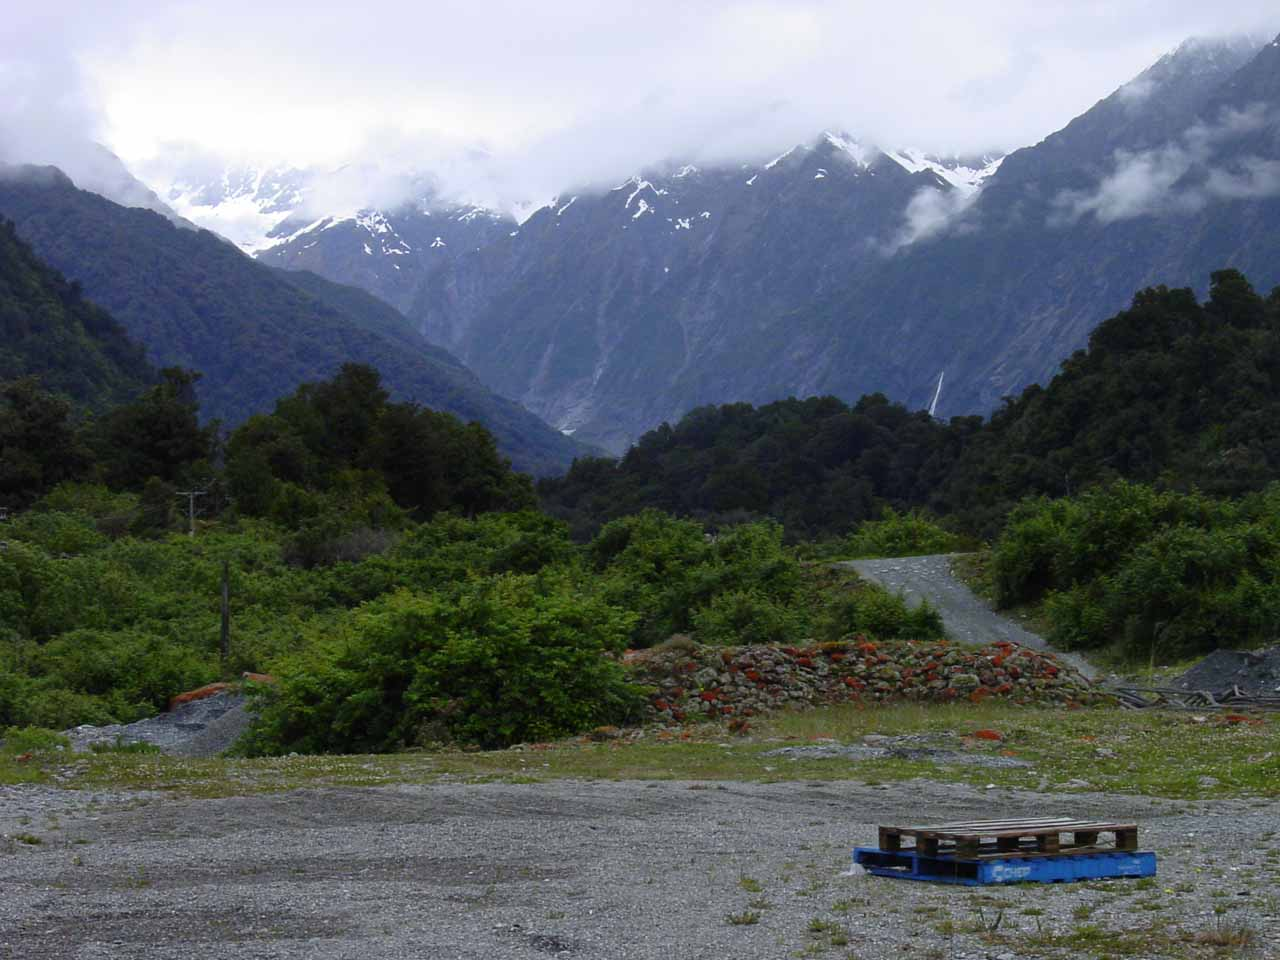 Looking past the helipad towards the mountains surrounding the Franz Josef Glacier as we were waiting for our turn to go onto the glacier